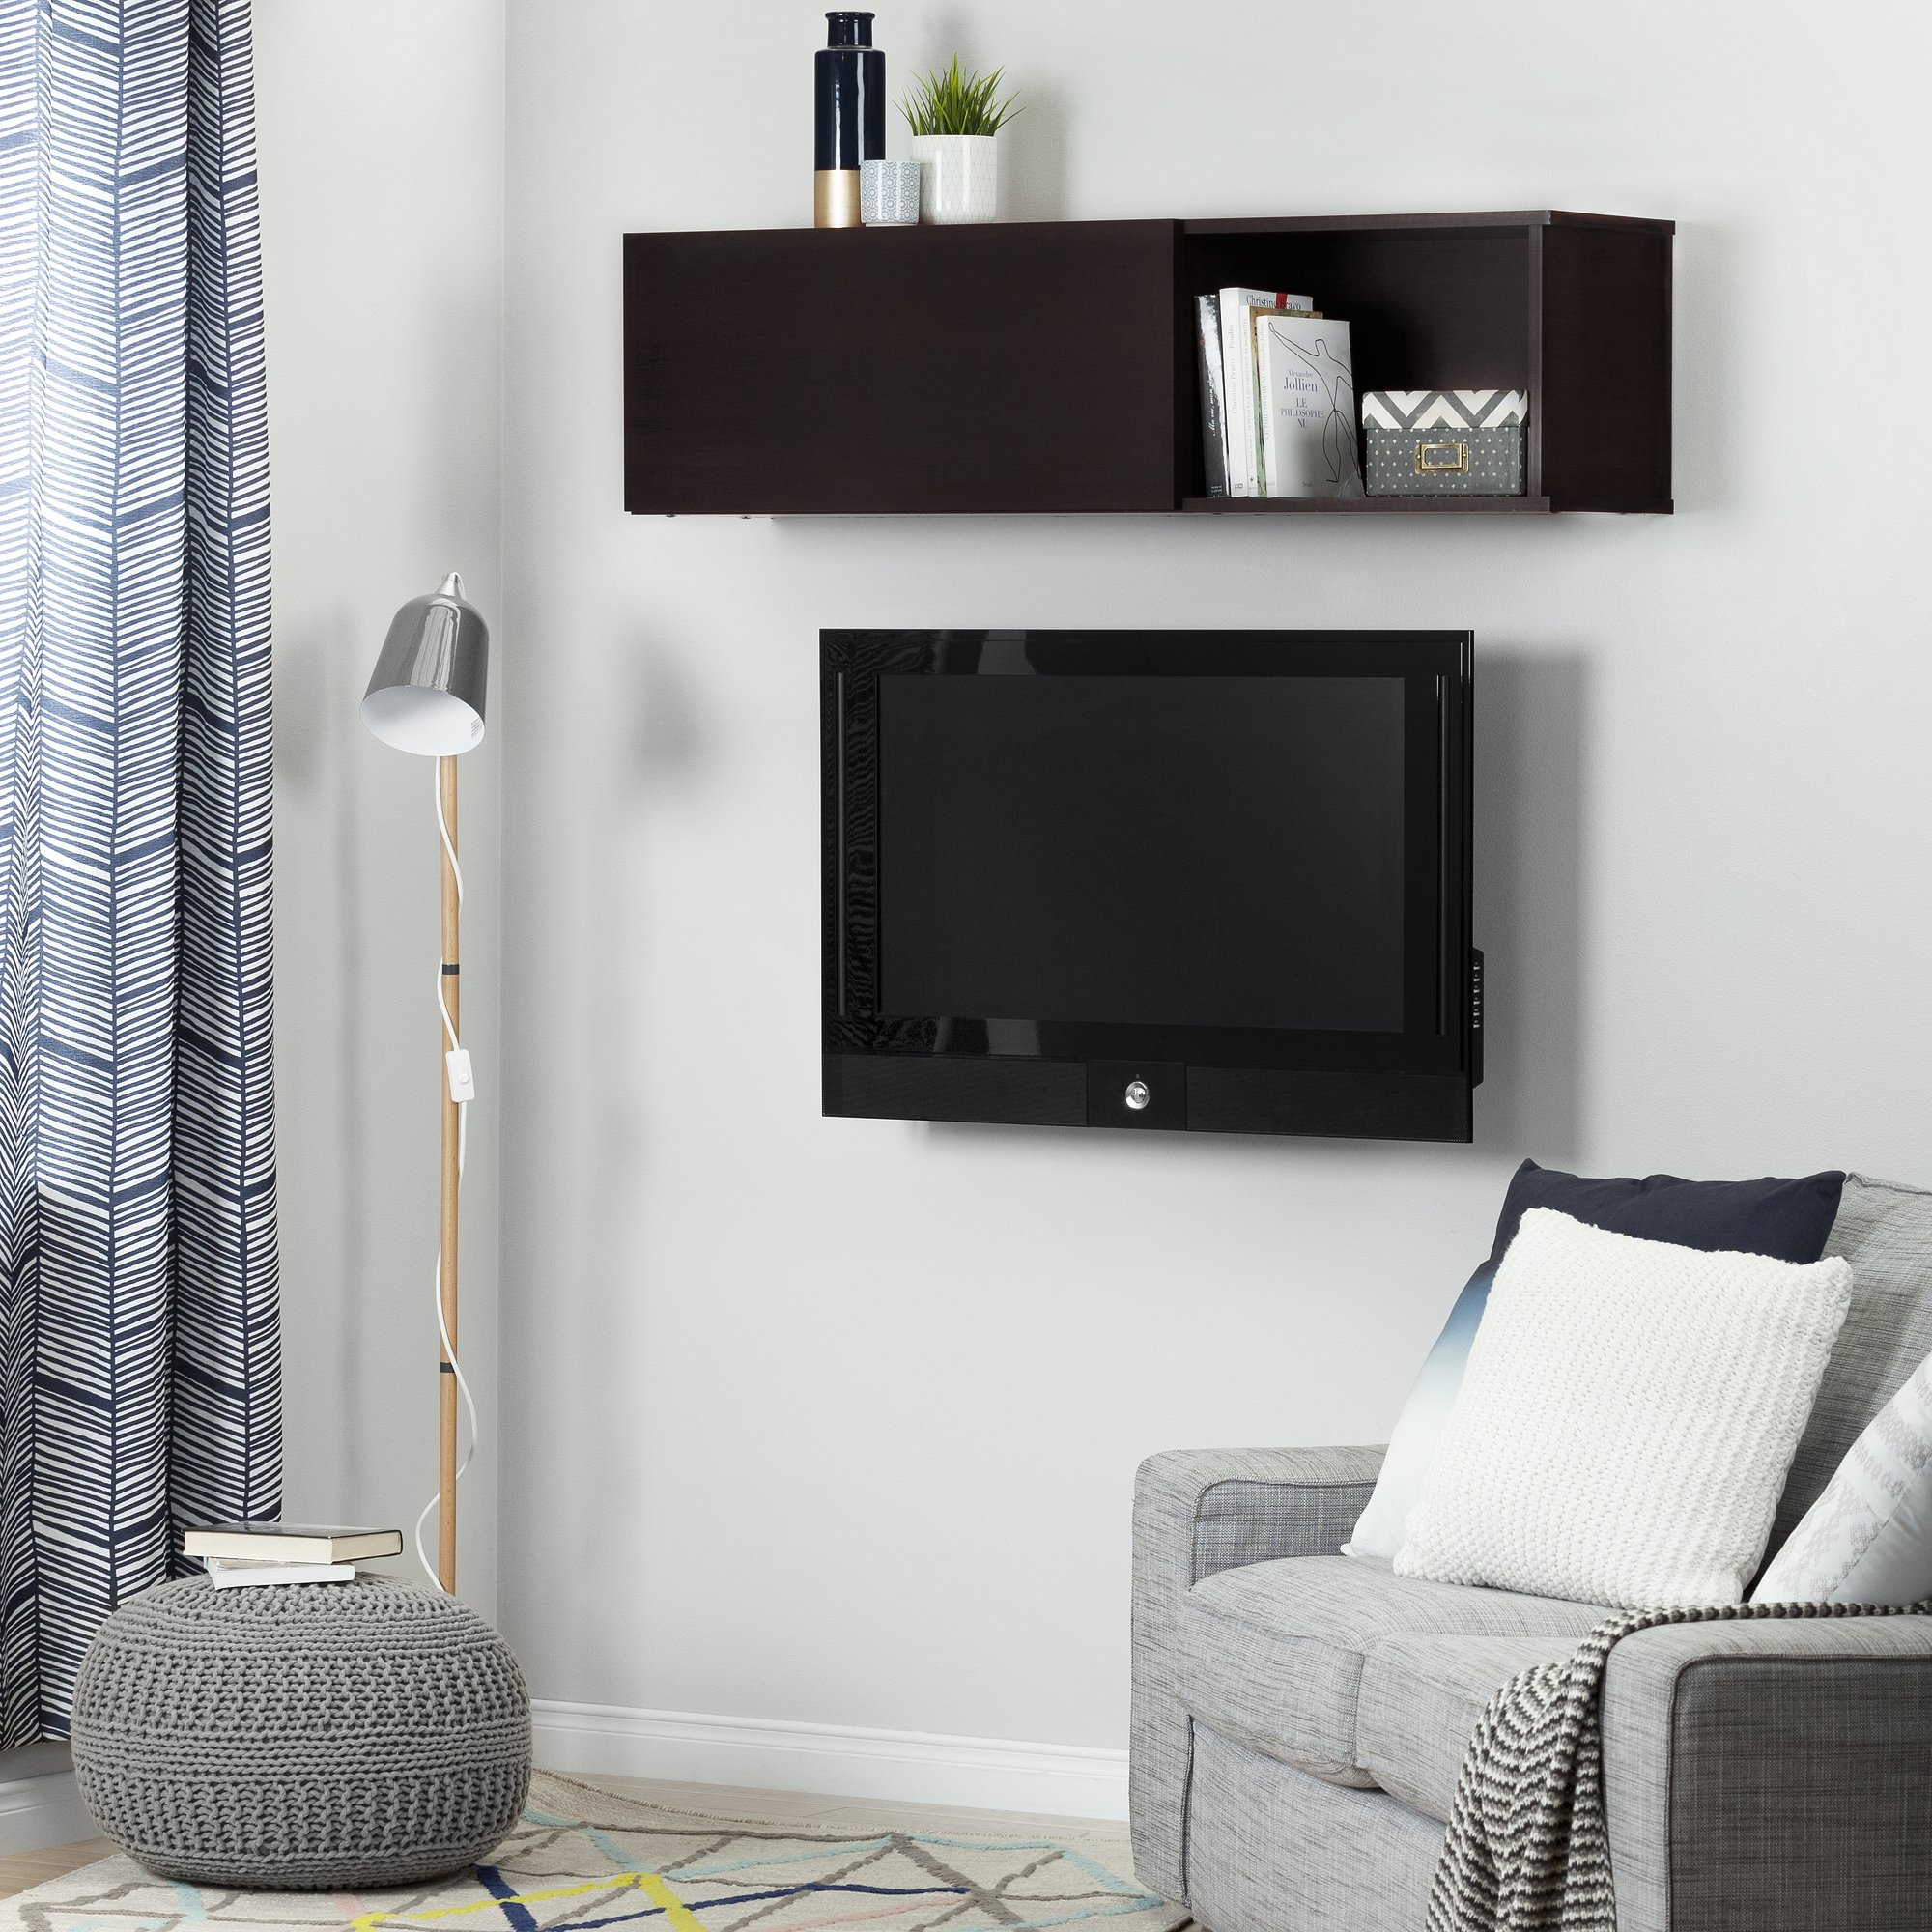 South Shore City Life Wall Mounted Storage Unit, Chocolate